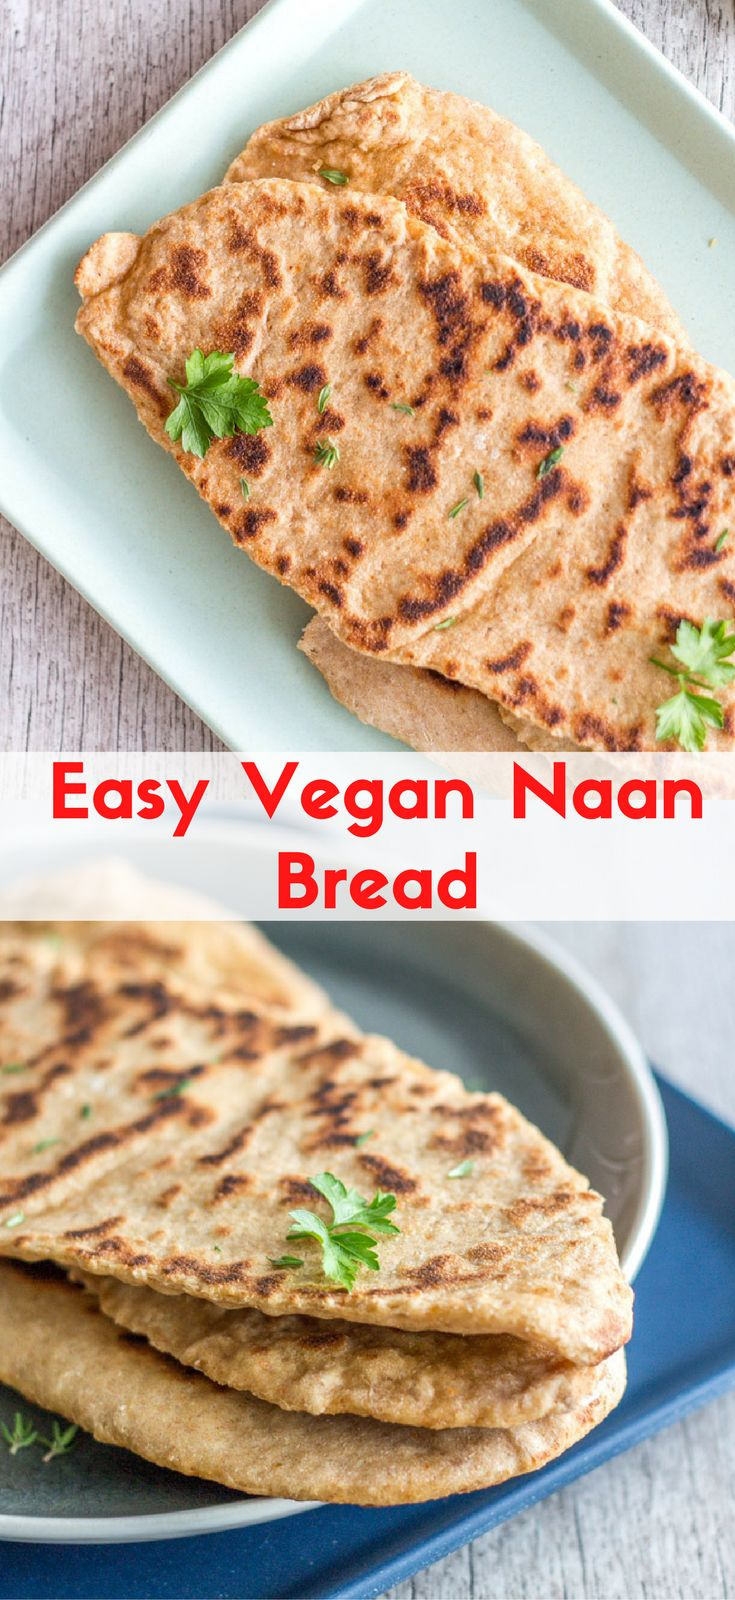 Easy Vegan Naan Bread, which is super simple, yet flavourful. Serve them with a dahl, bean stew, or make a sandwich with hummus and falafels. Healthy vegan recipes|healthy| vegan| dinner| lunch| vegan dinner recipes| recipes| vegetarian| The Mostly Healthy | baking